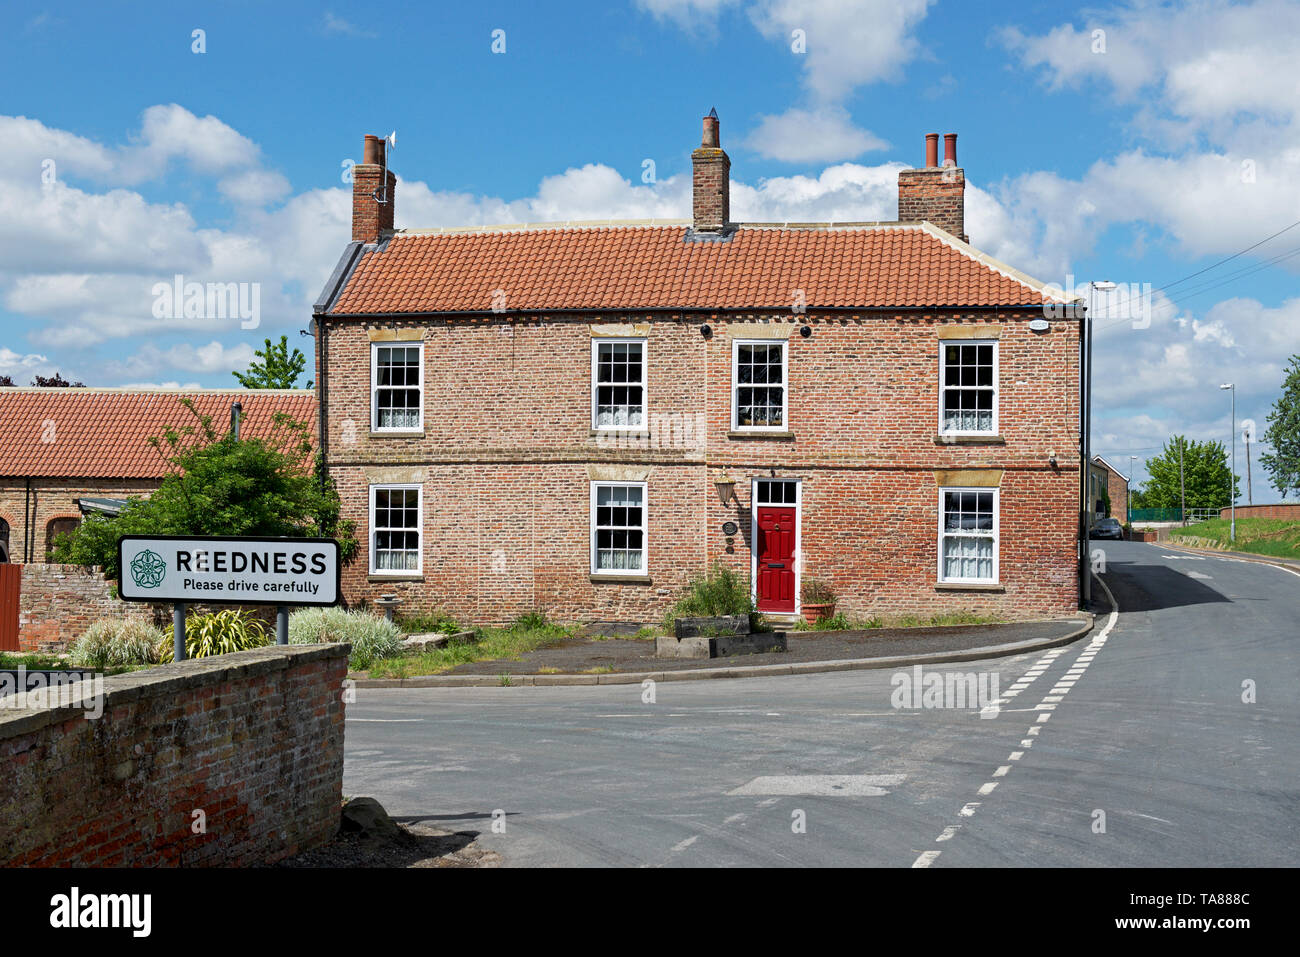 The village of Reedness, one of the Marshland villages, East Yorkshire, England UK - Stock Image